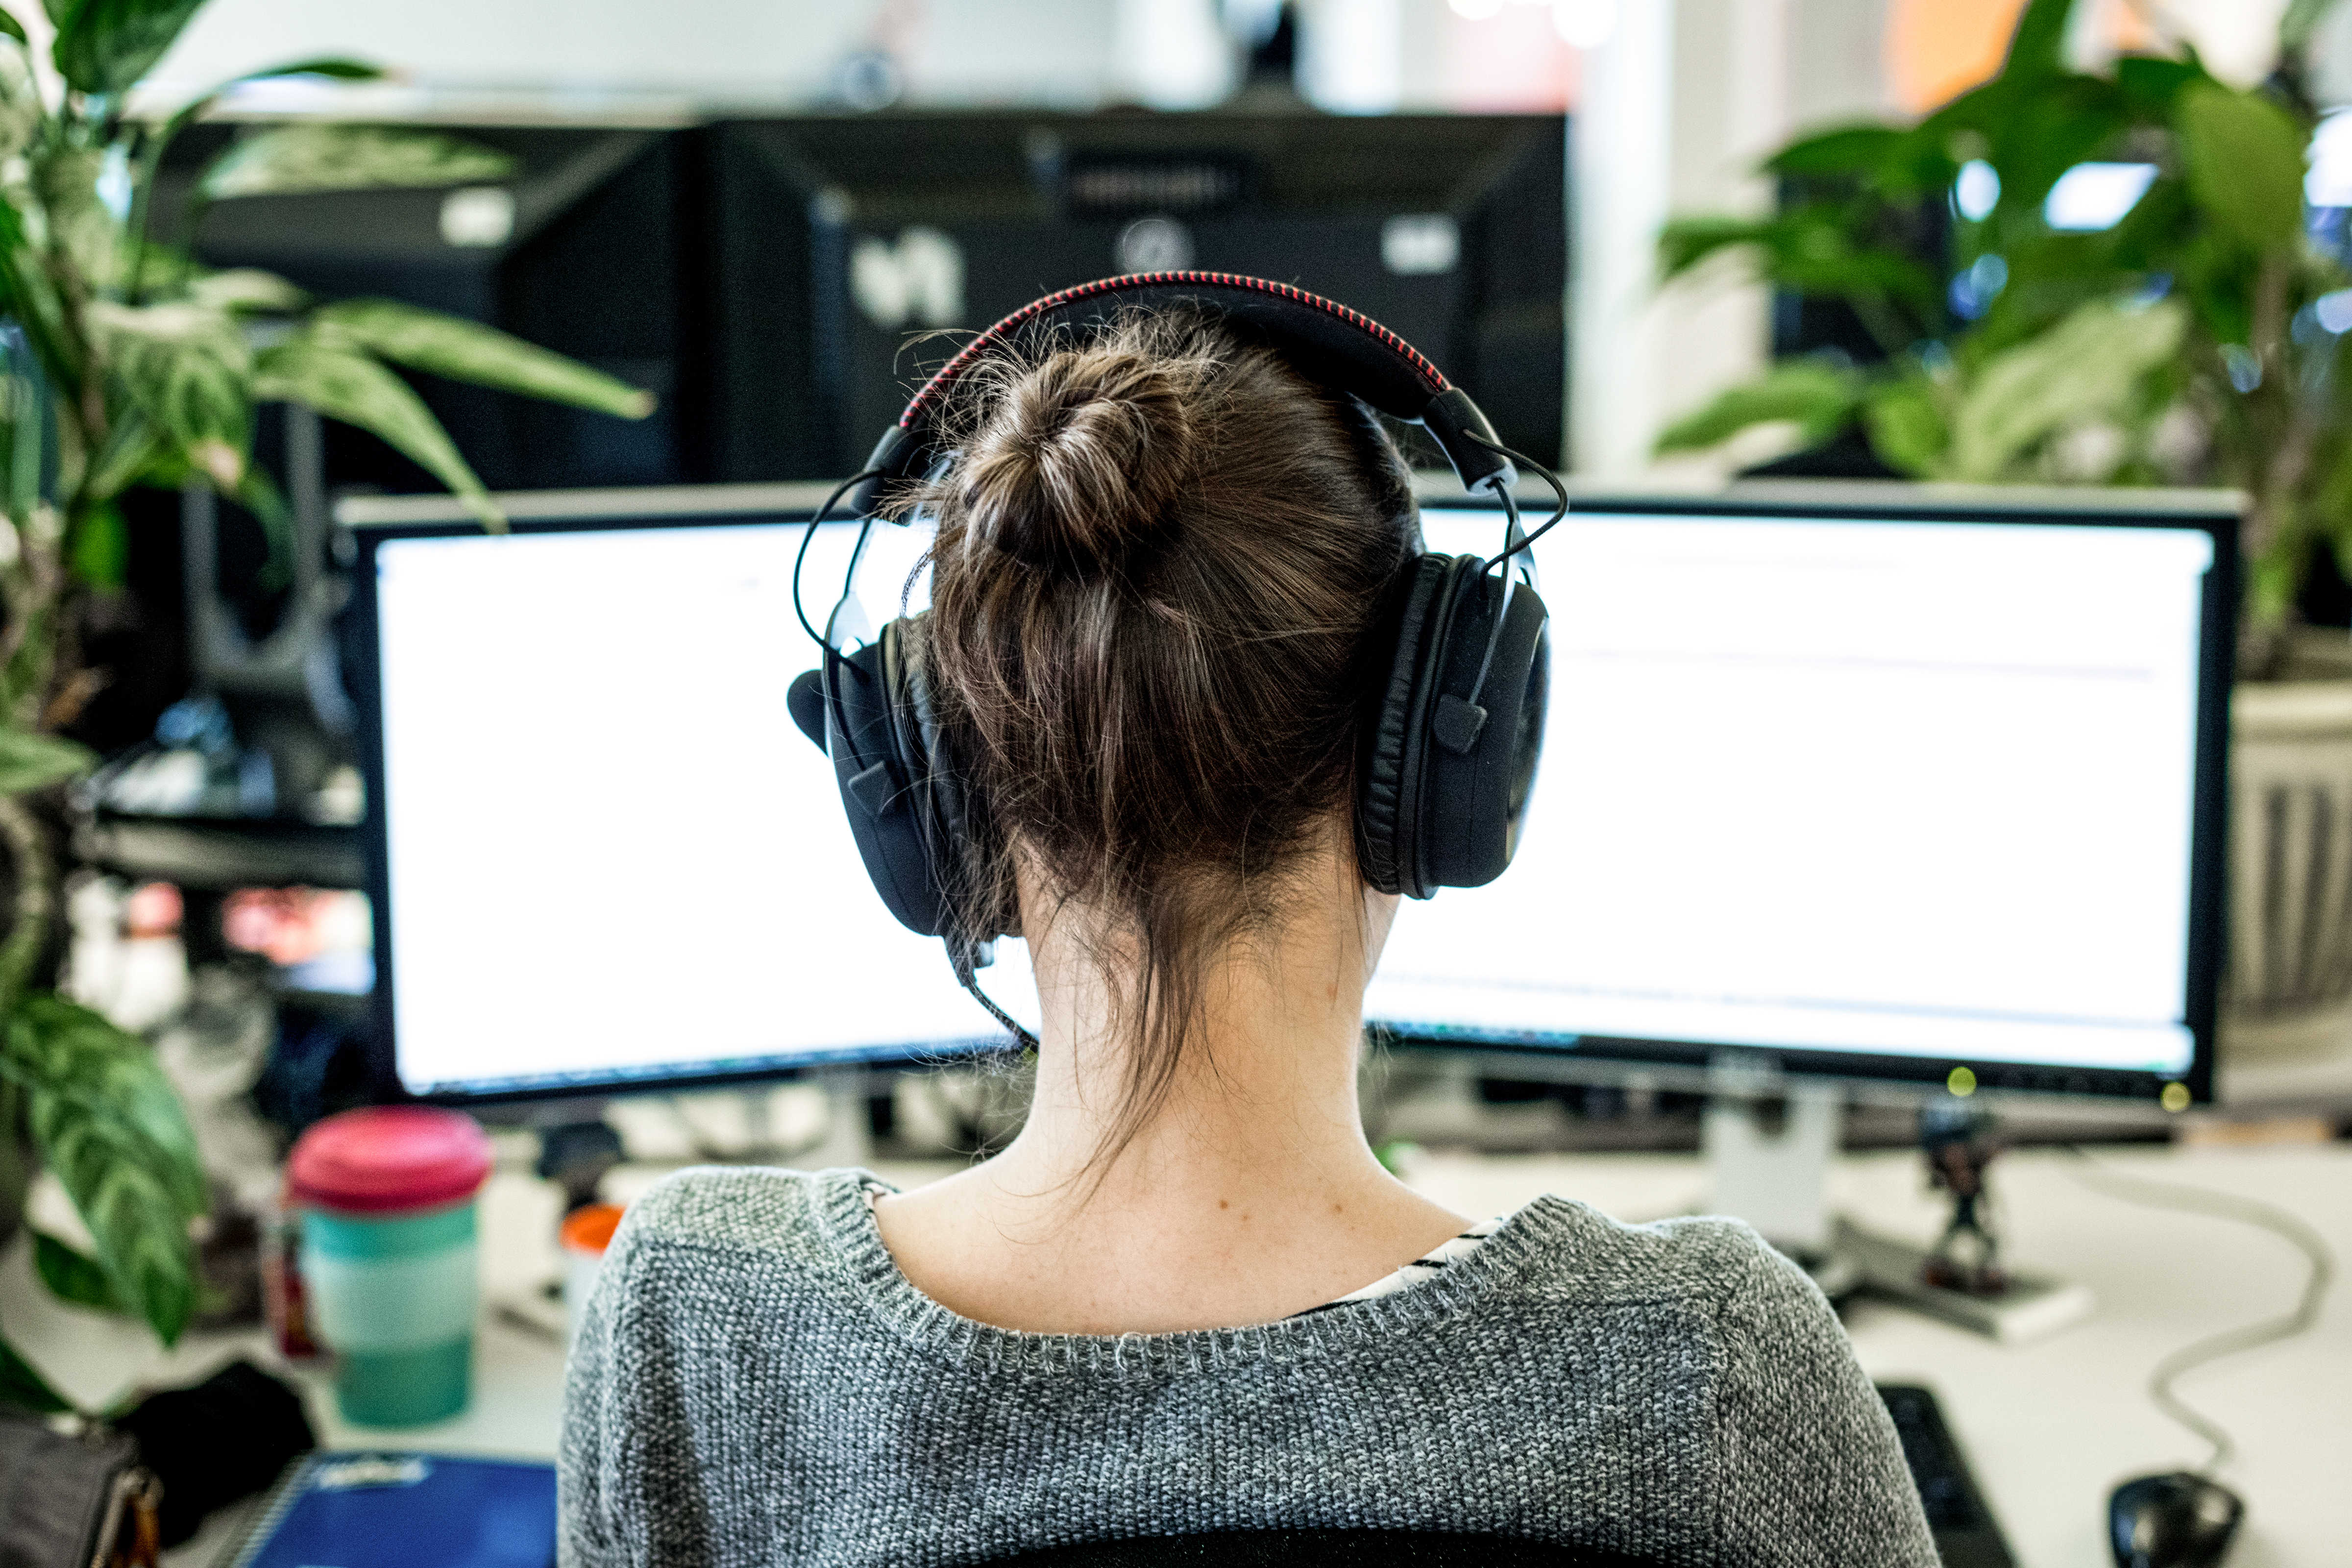 Employee wearing headphones and sitting at a desk with two display screens